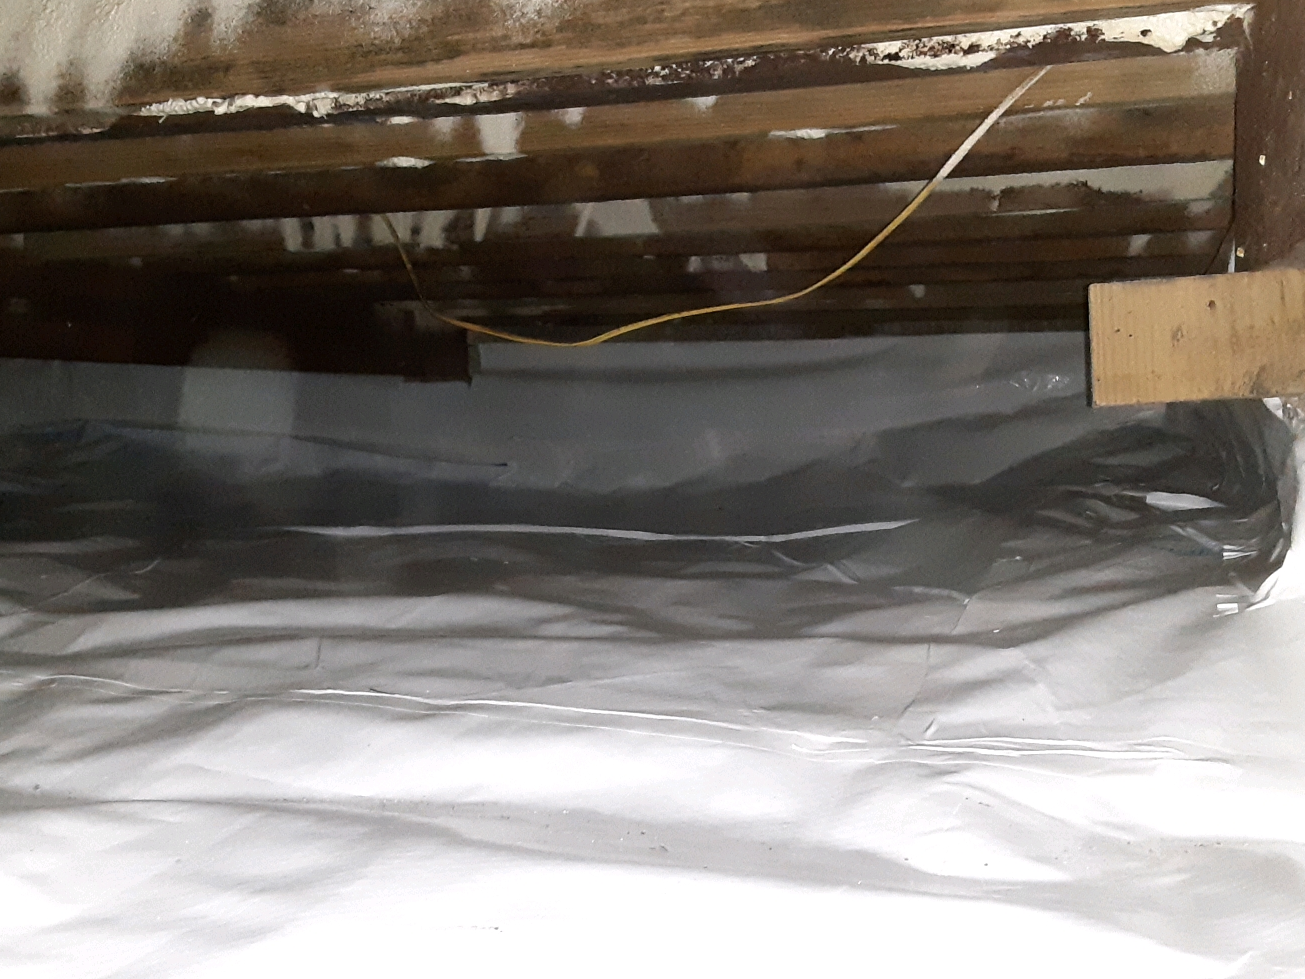 Crawl Space Encapsulation in Allen, TX - After Photo